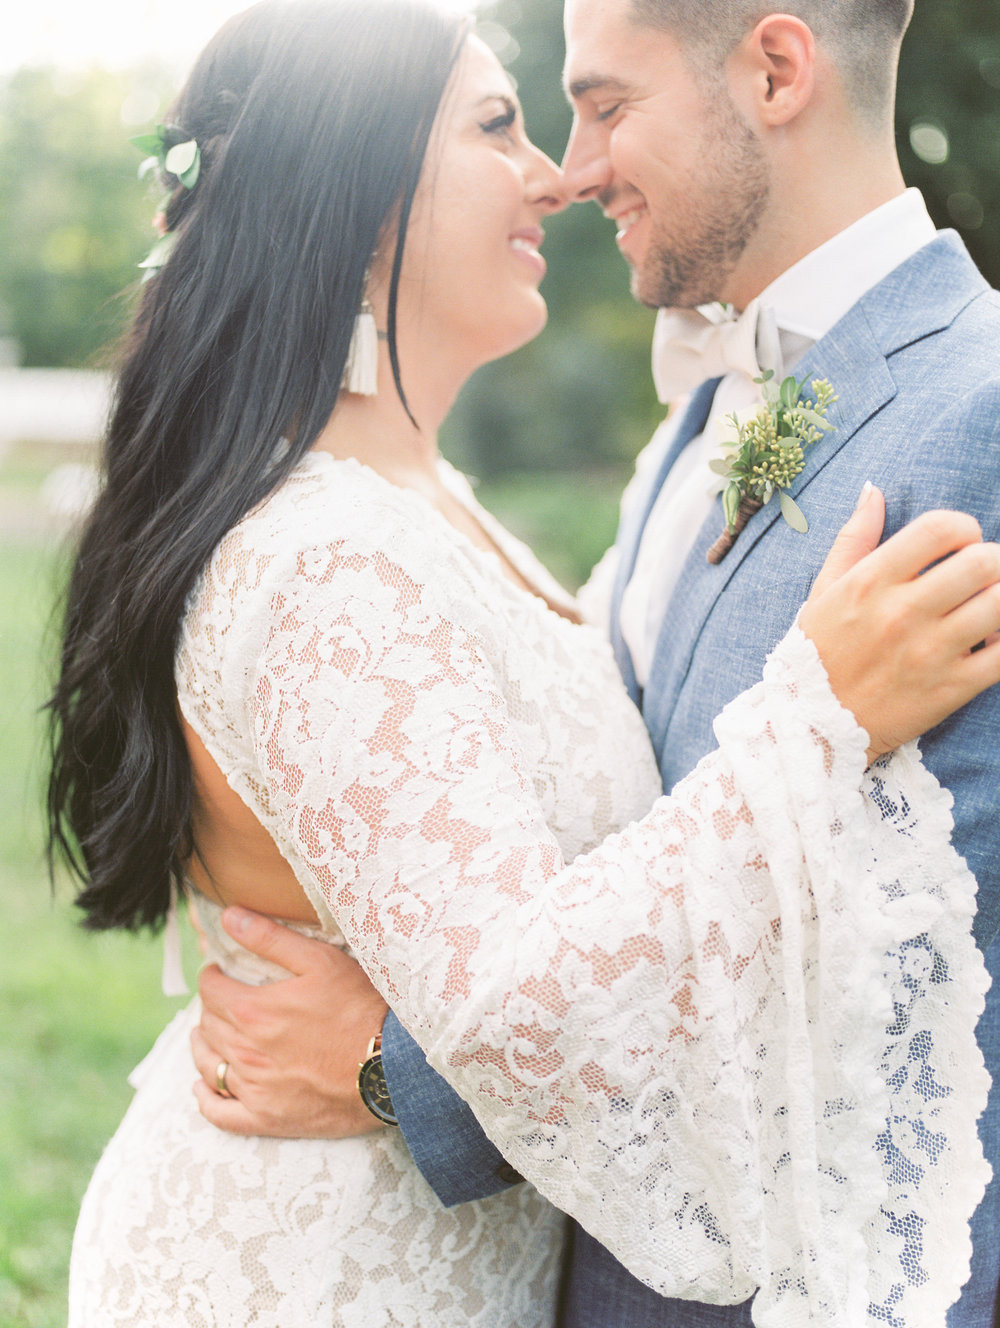 Check out the draped bell sleeve on this hippy lace BHLDN gown from this bright boho chic Tyler Gardens wedding in Bucks County